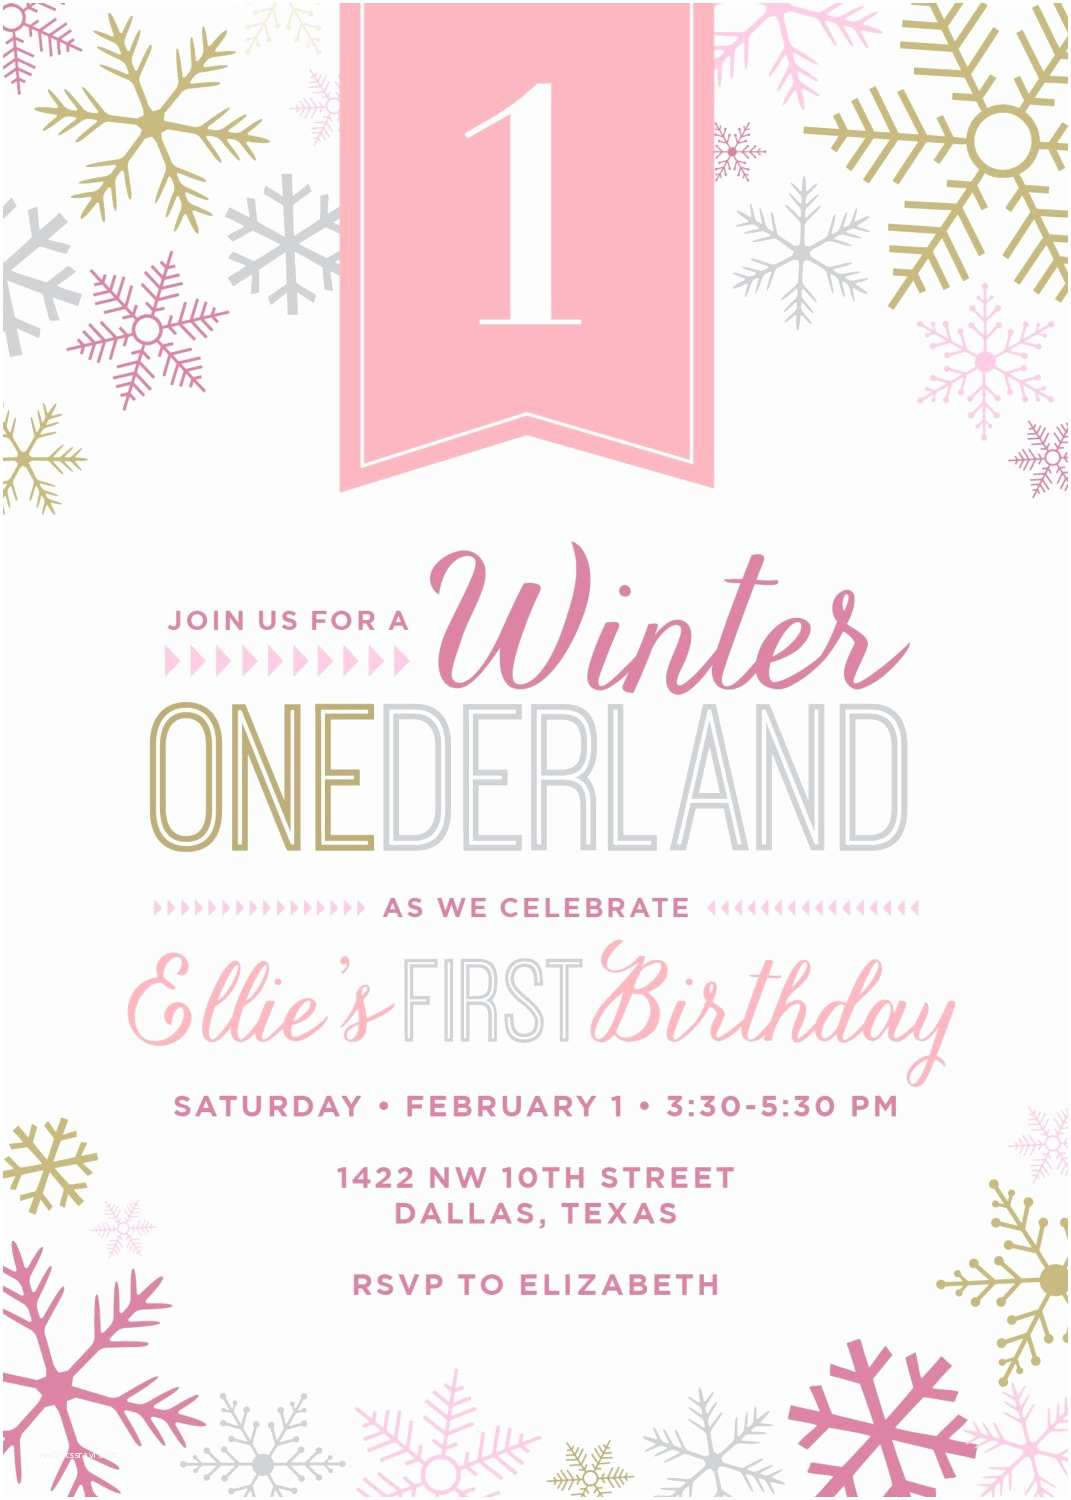 Winter Party Invitations Winter Wonderland Party Invitation by touiesdesign On Etsy